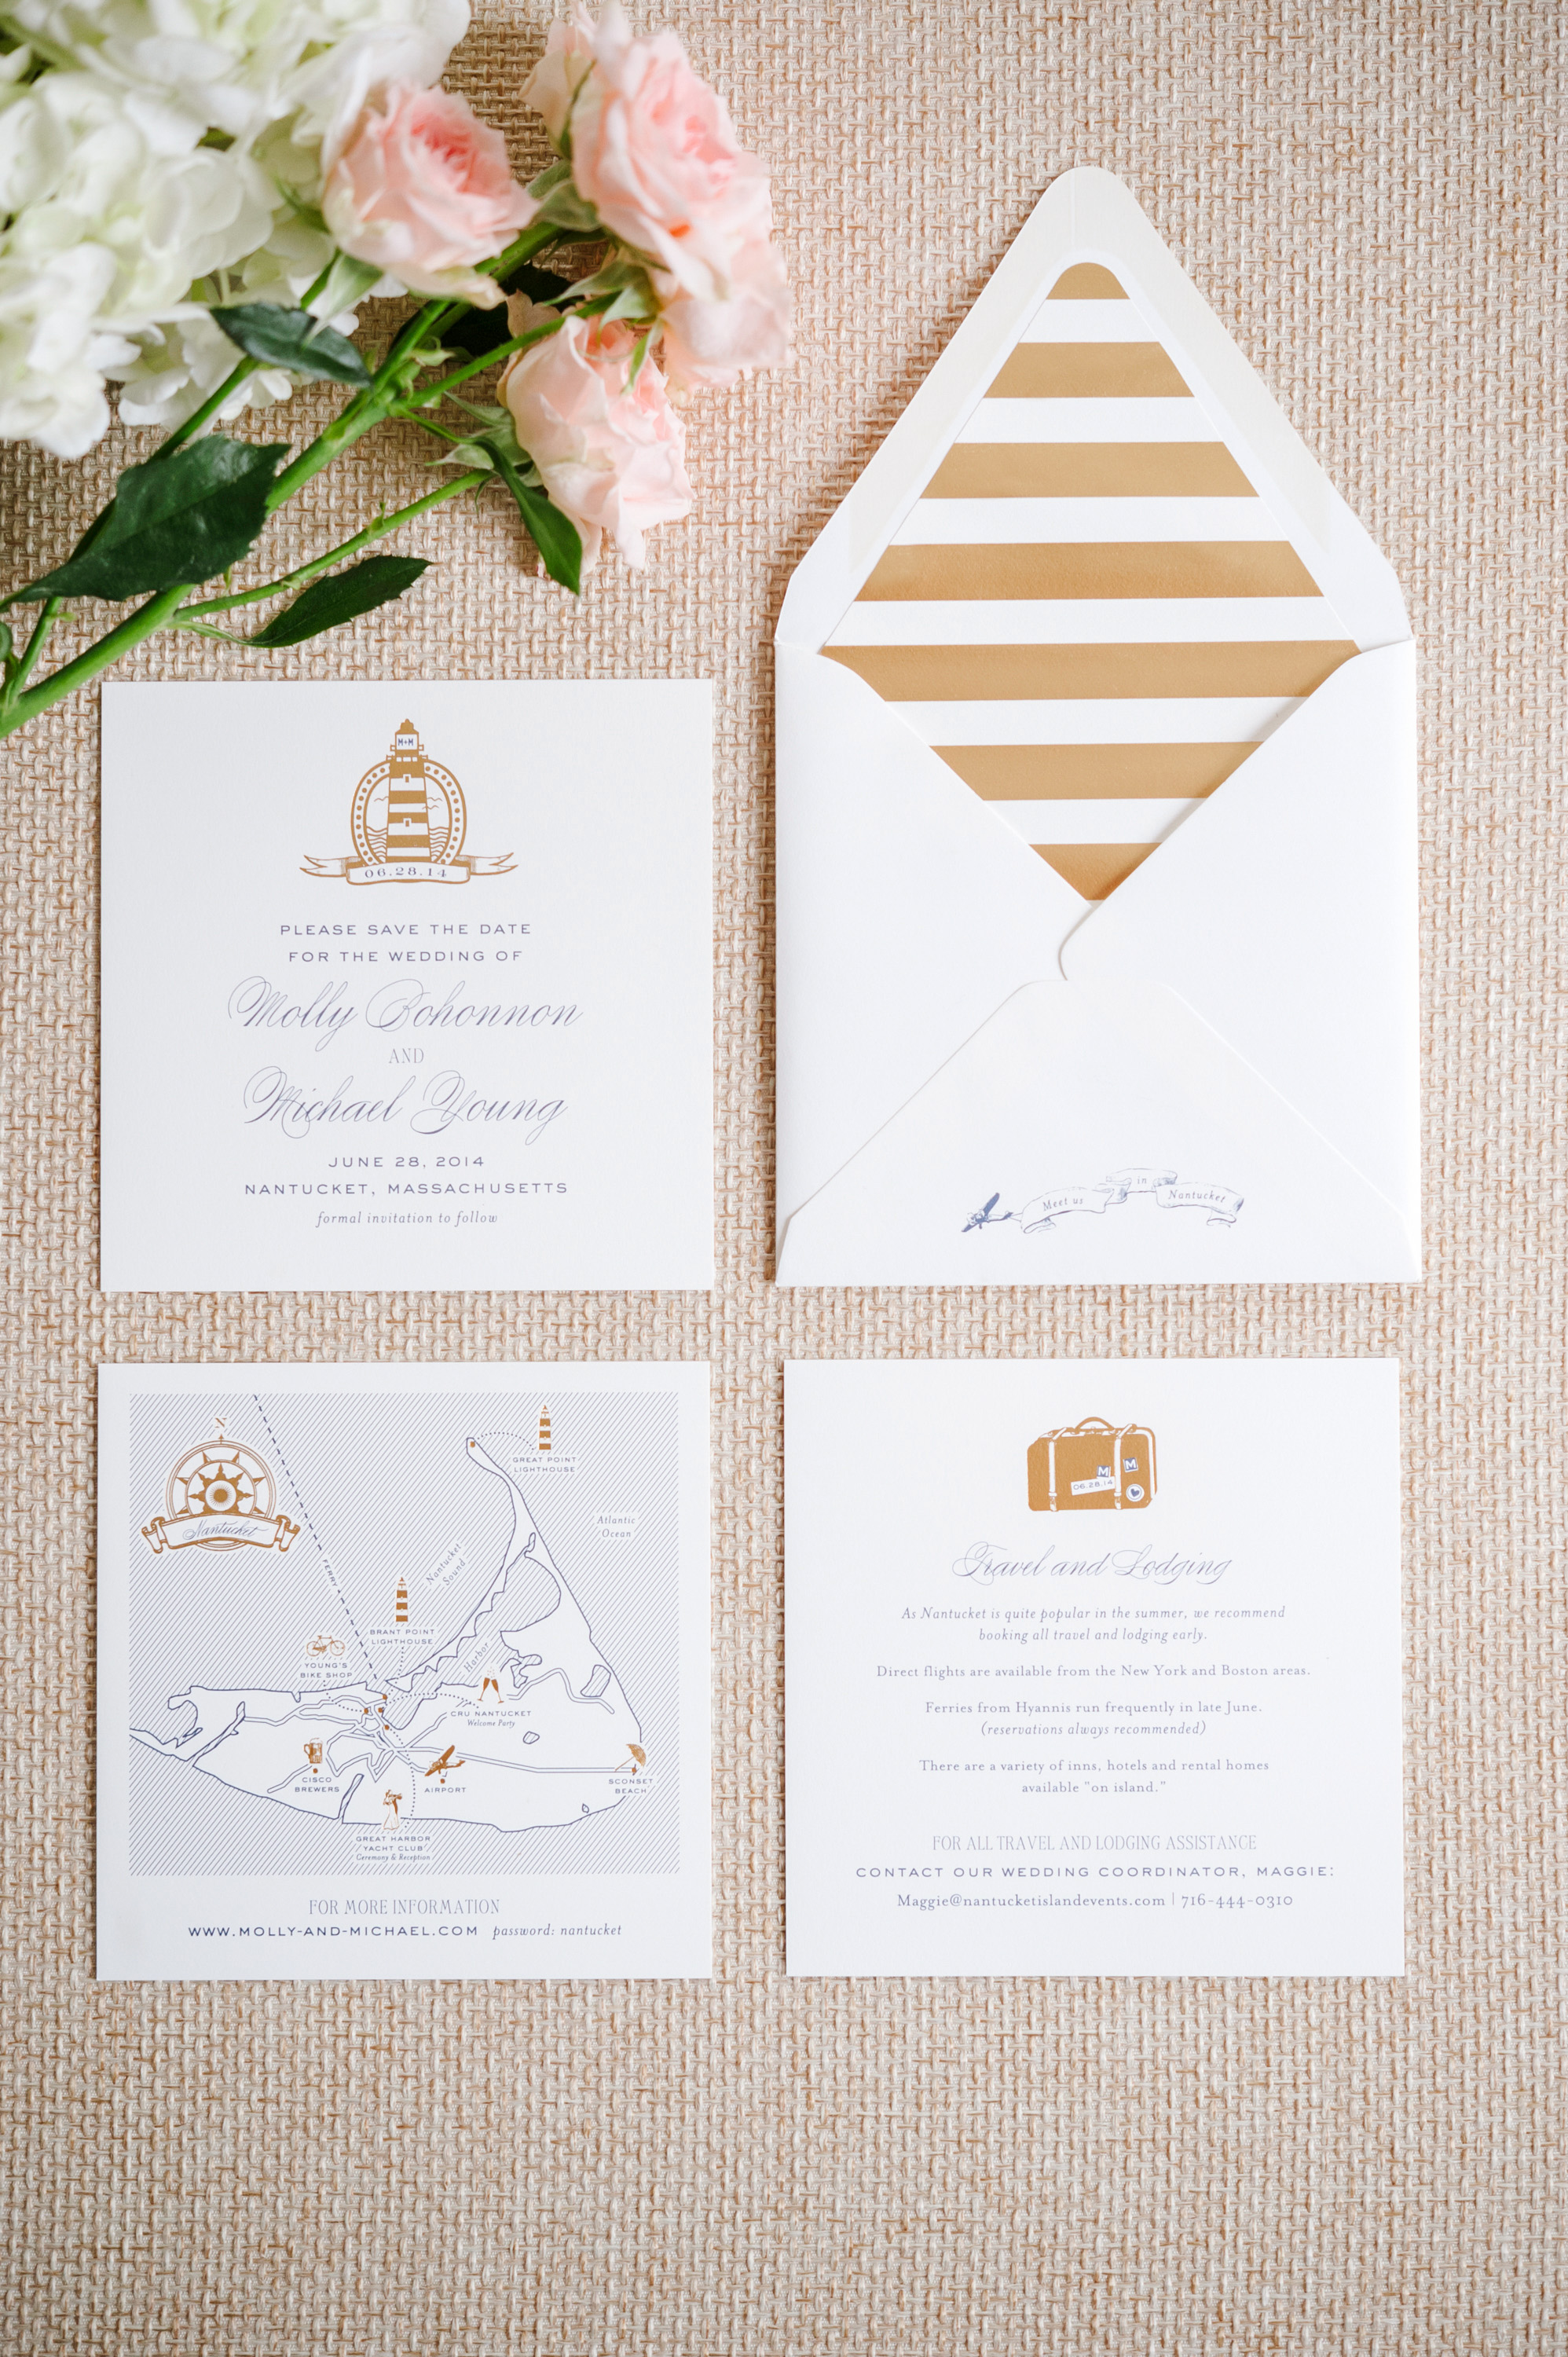 nautical invitation set with navy blue and gold elements